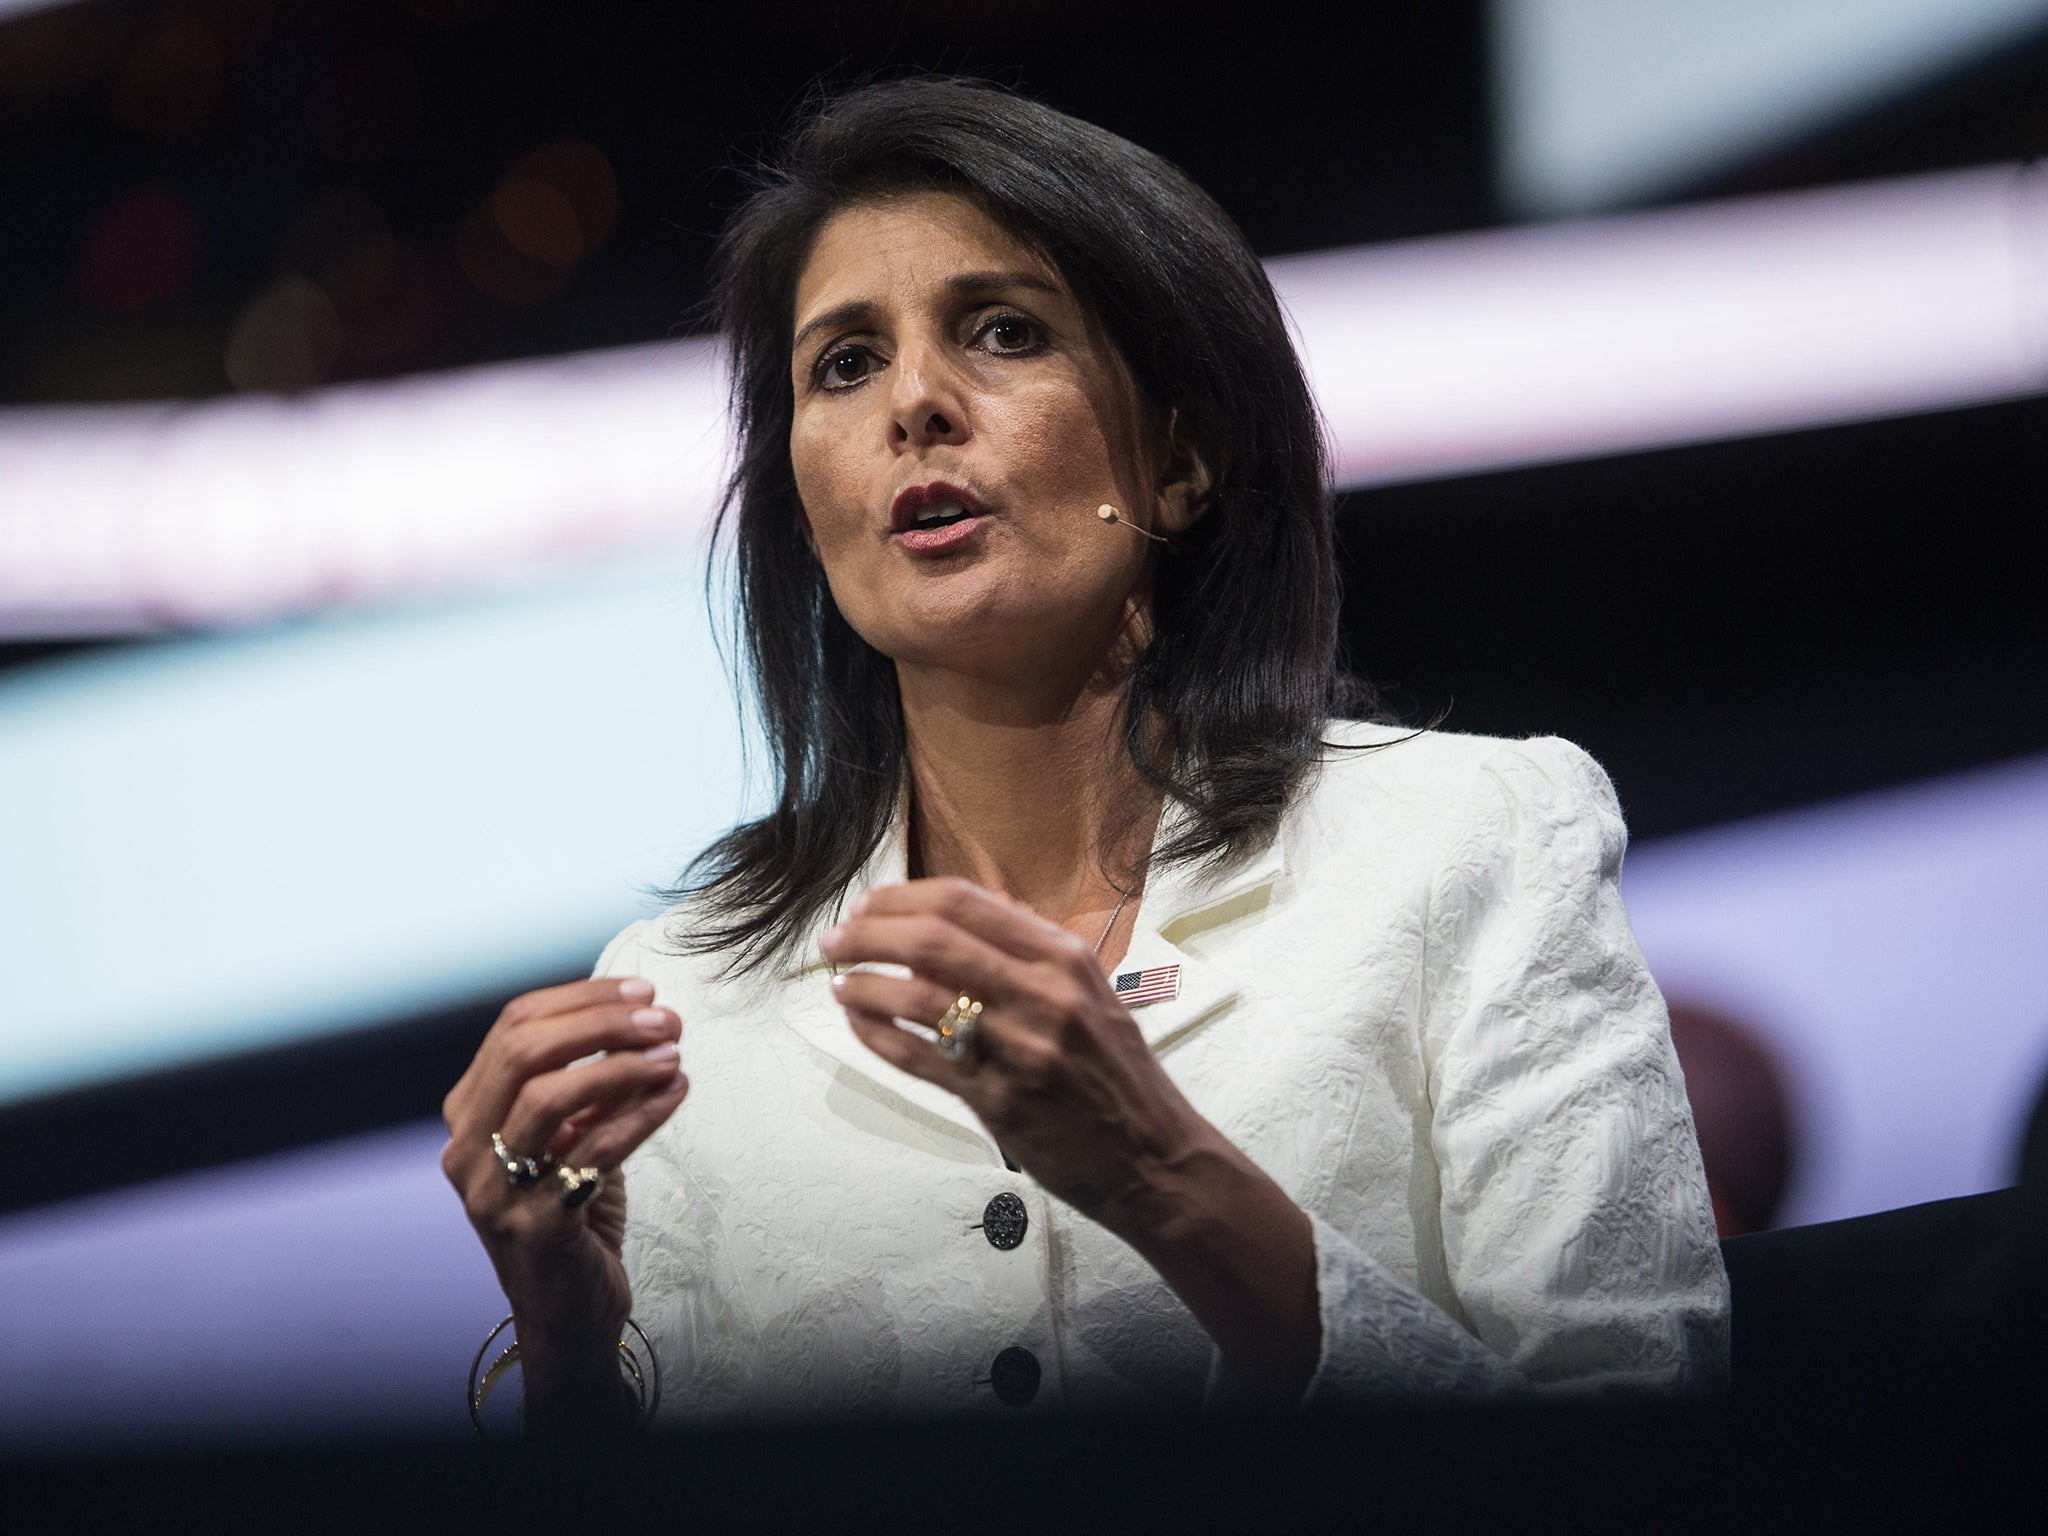 Netanyahu sad to see Nikki Haley go as Palestinians breathe sigh of relief